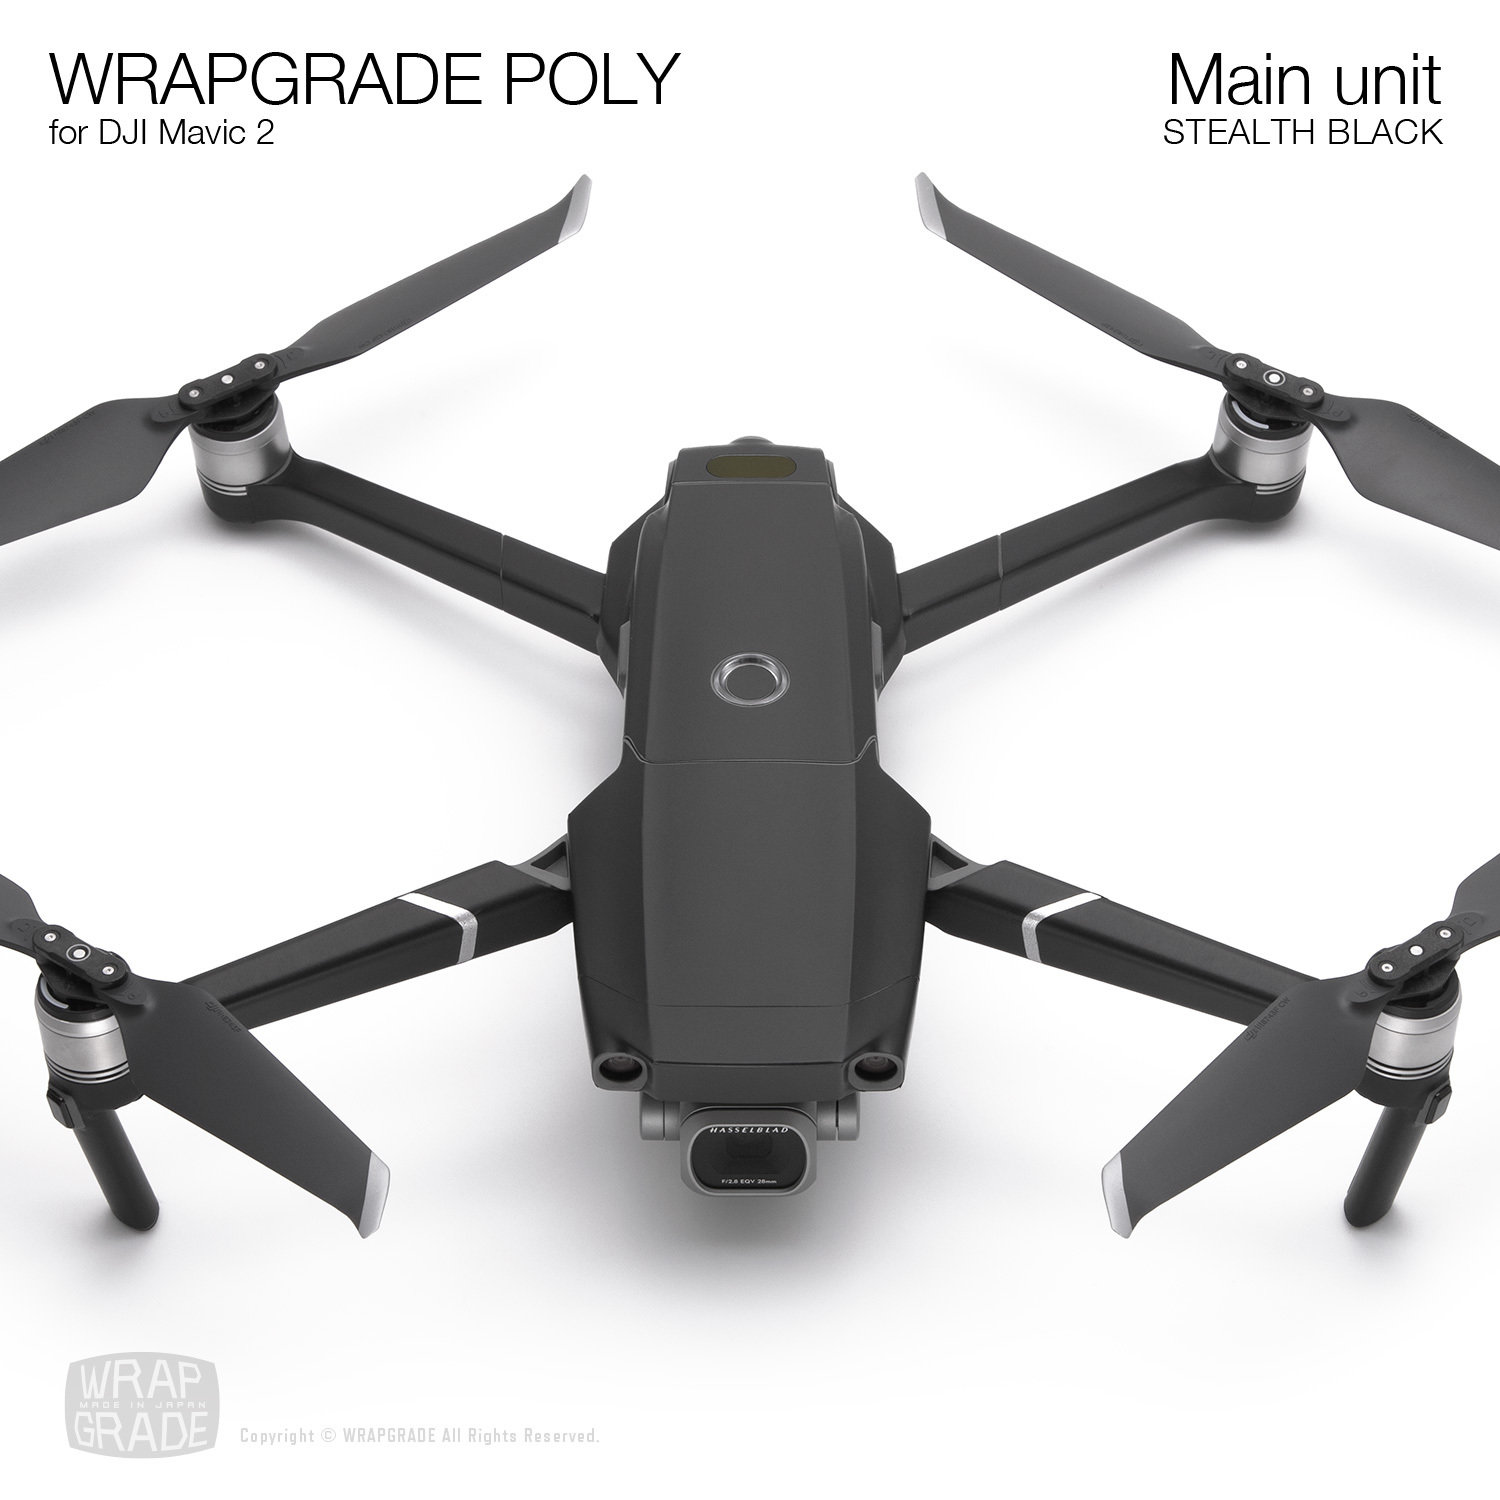 Wrapgrade Poly Skin for DJI Mavic 2 | Main unit (STEALTH BLACK)